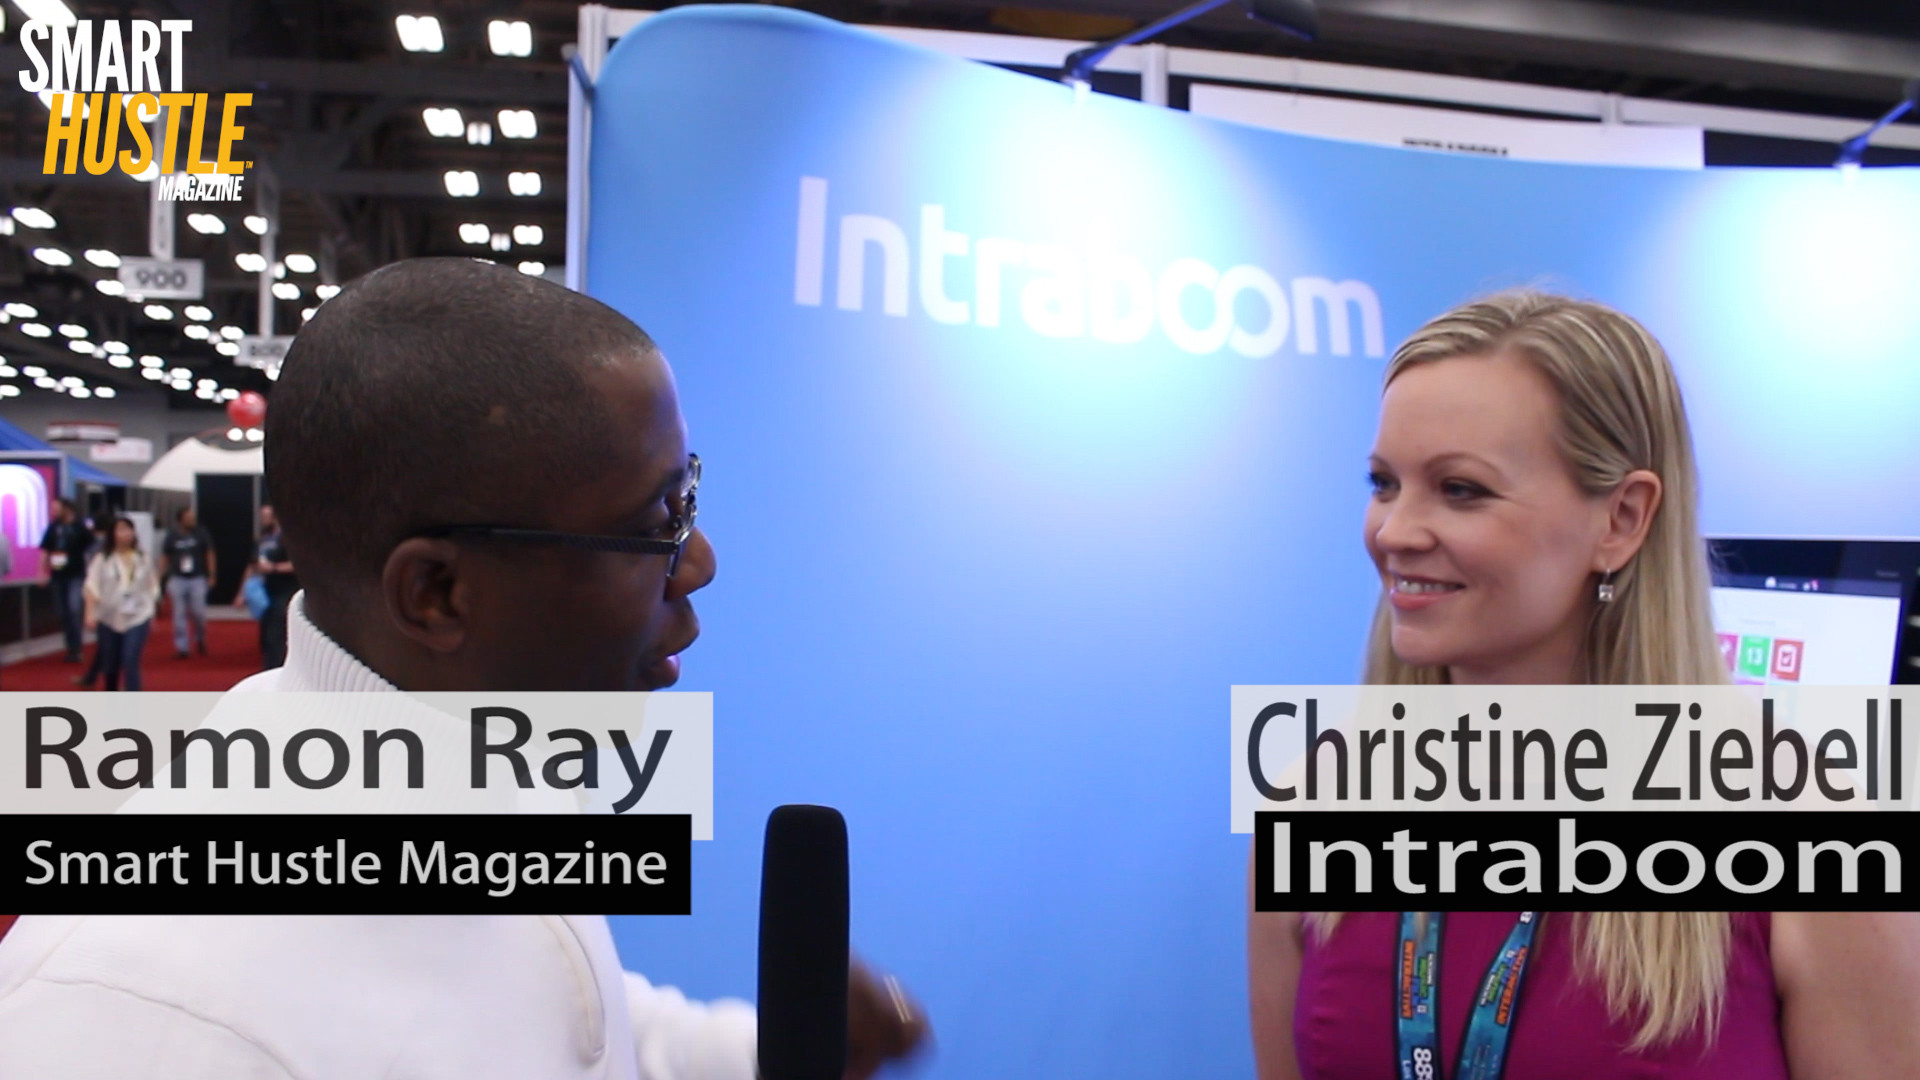 SXSW 2016 Interview: How Intraboom is Changing the Way Teams Communicate